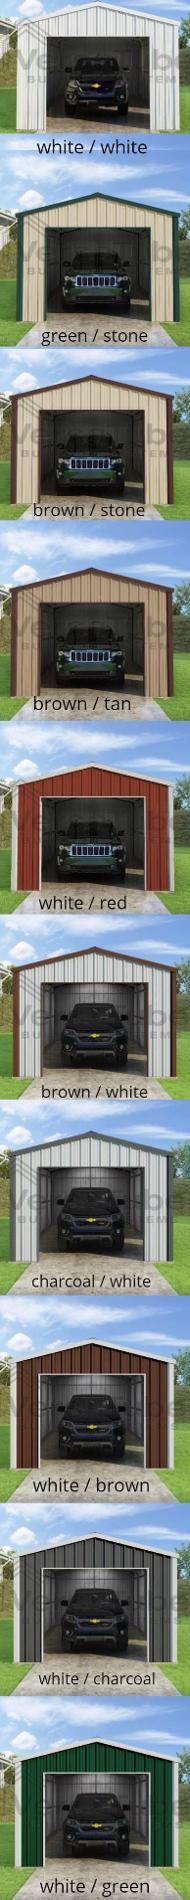 Versatube 20x20x10 Frontier Steel Garage Lean-To Kit (FBM2202010516-LT12) Choose your color combination!